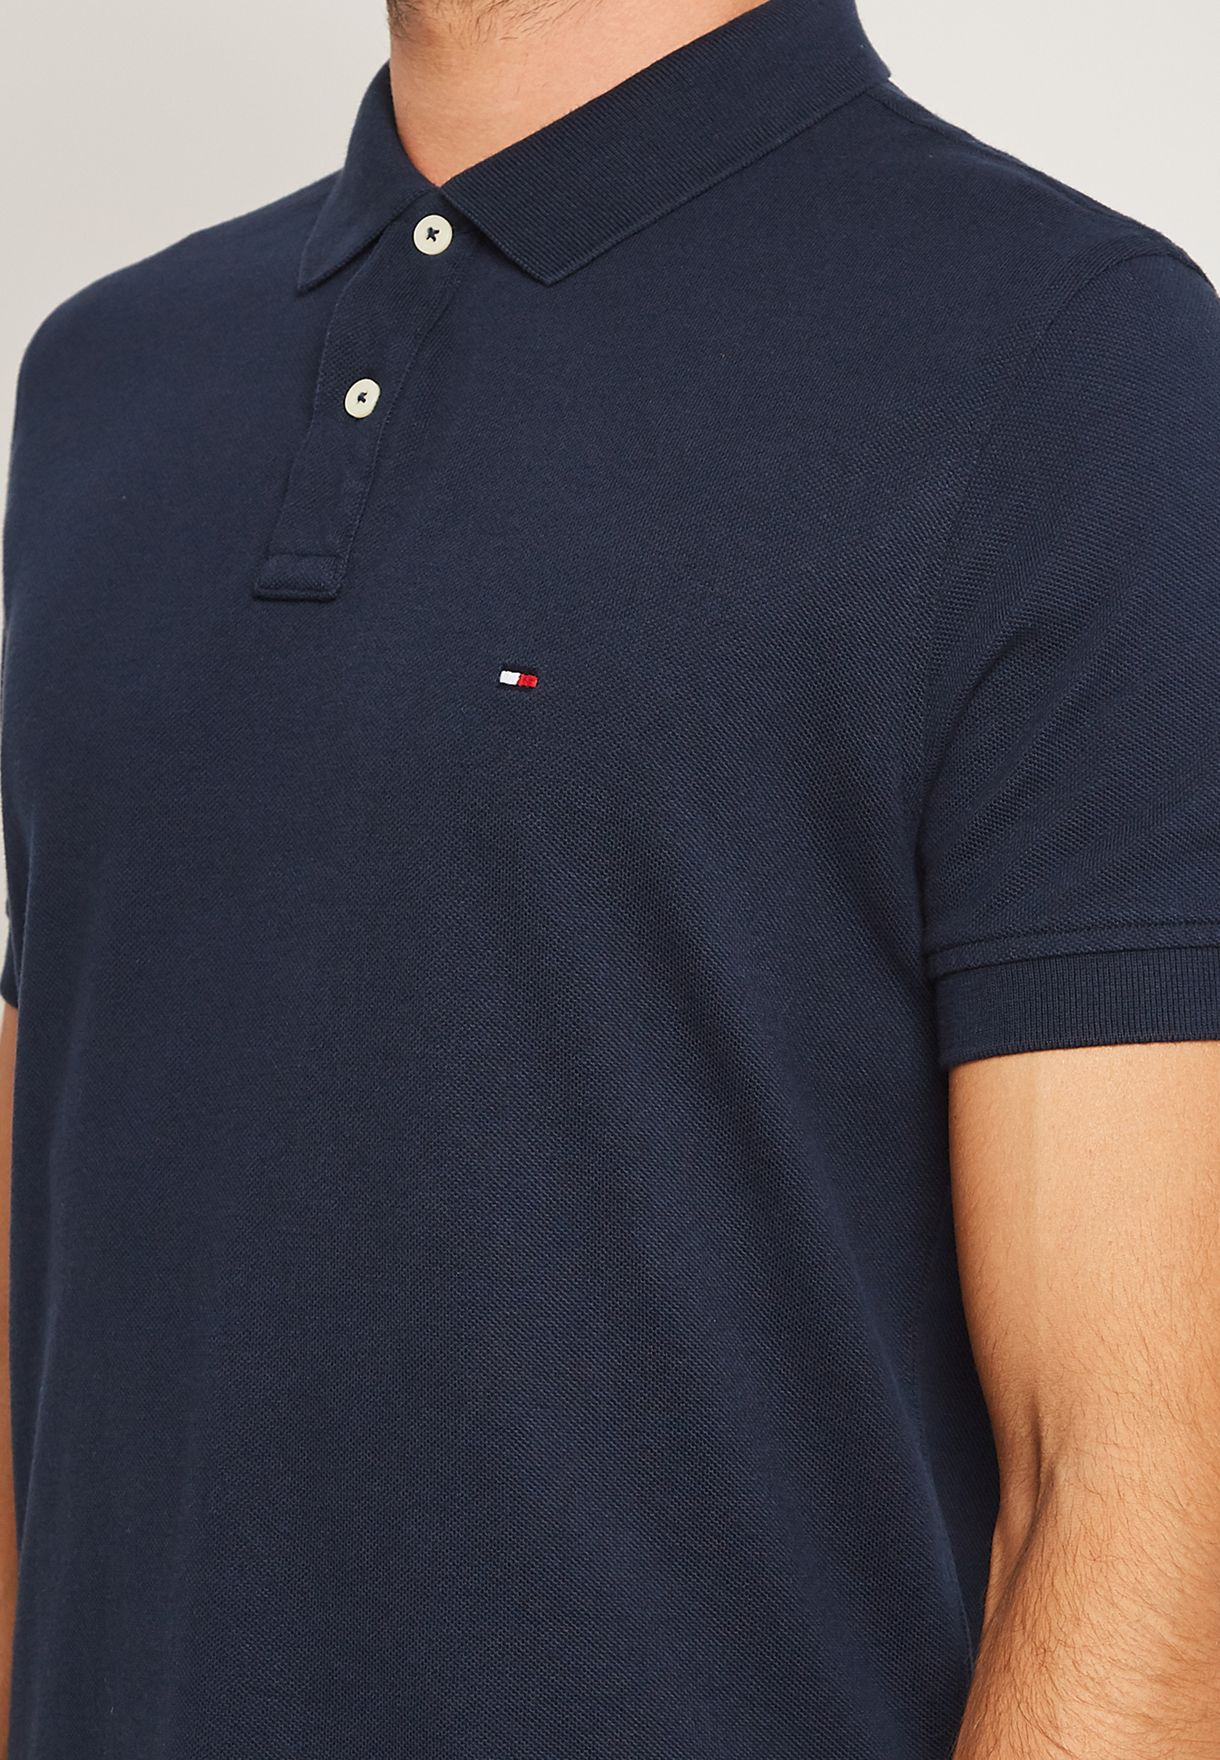 Back Logo Polo